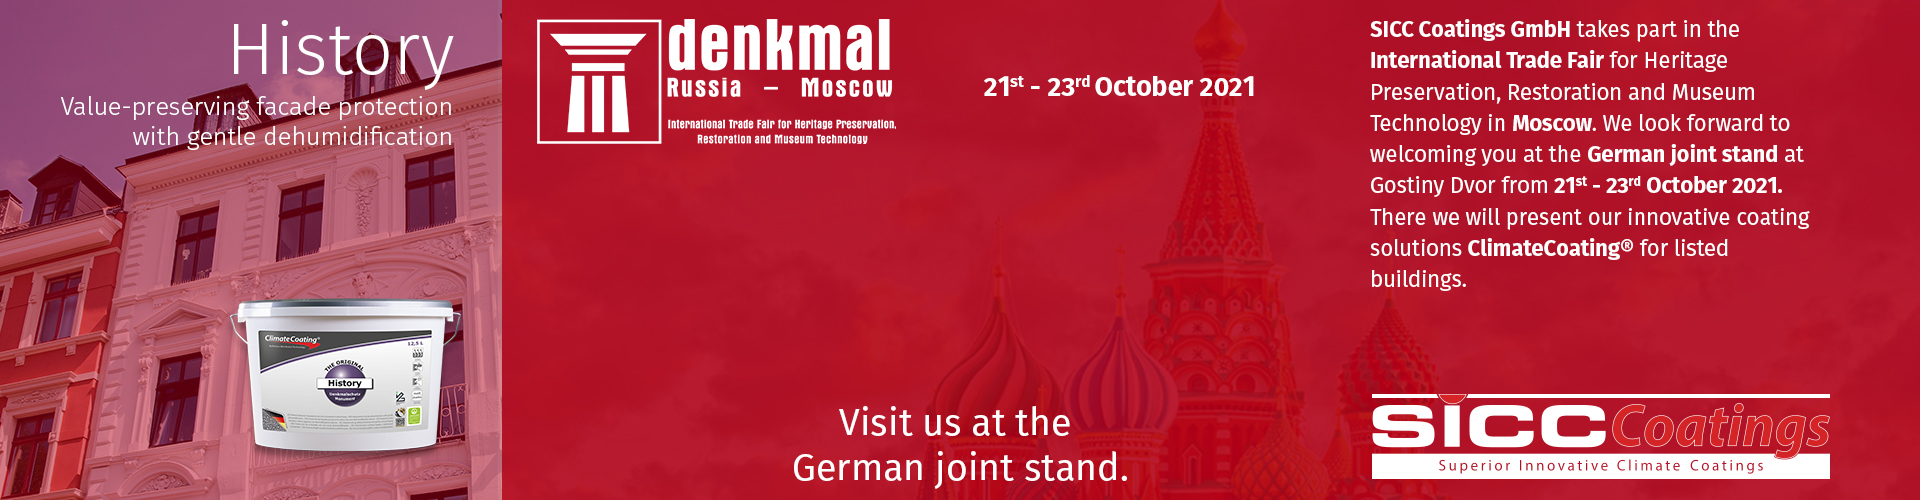 International Trade Fair for Heritage Preservation, Restoration and Museum Technology – Moscow